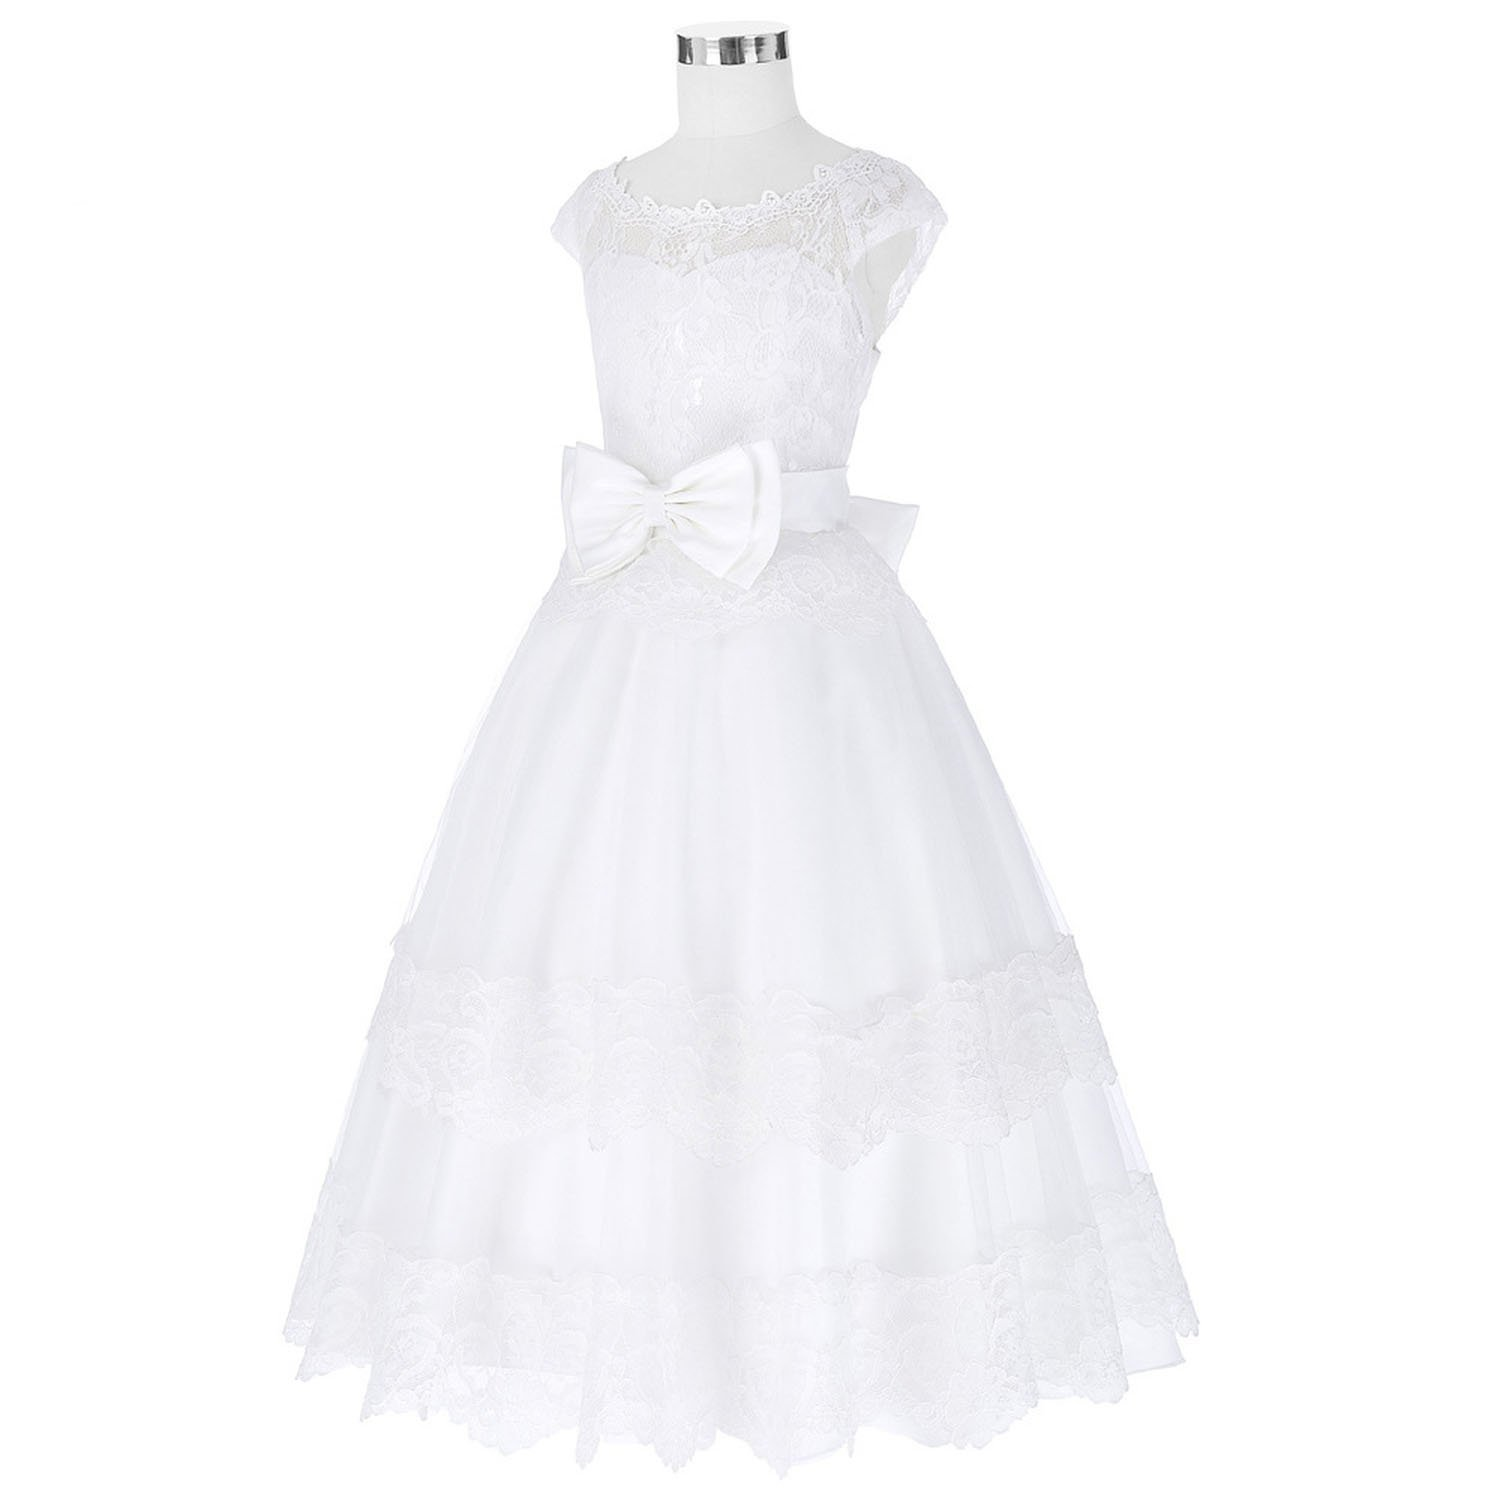 Toping Fine girl dress Lace Flower Girl for Wedding Princess Party Birthday Baby Girls Communion Ball Gown, Child-3, by Toping Fine girl dress (Image #4)